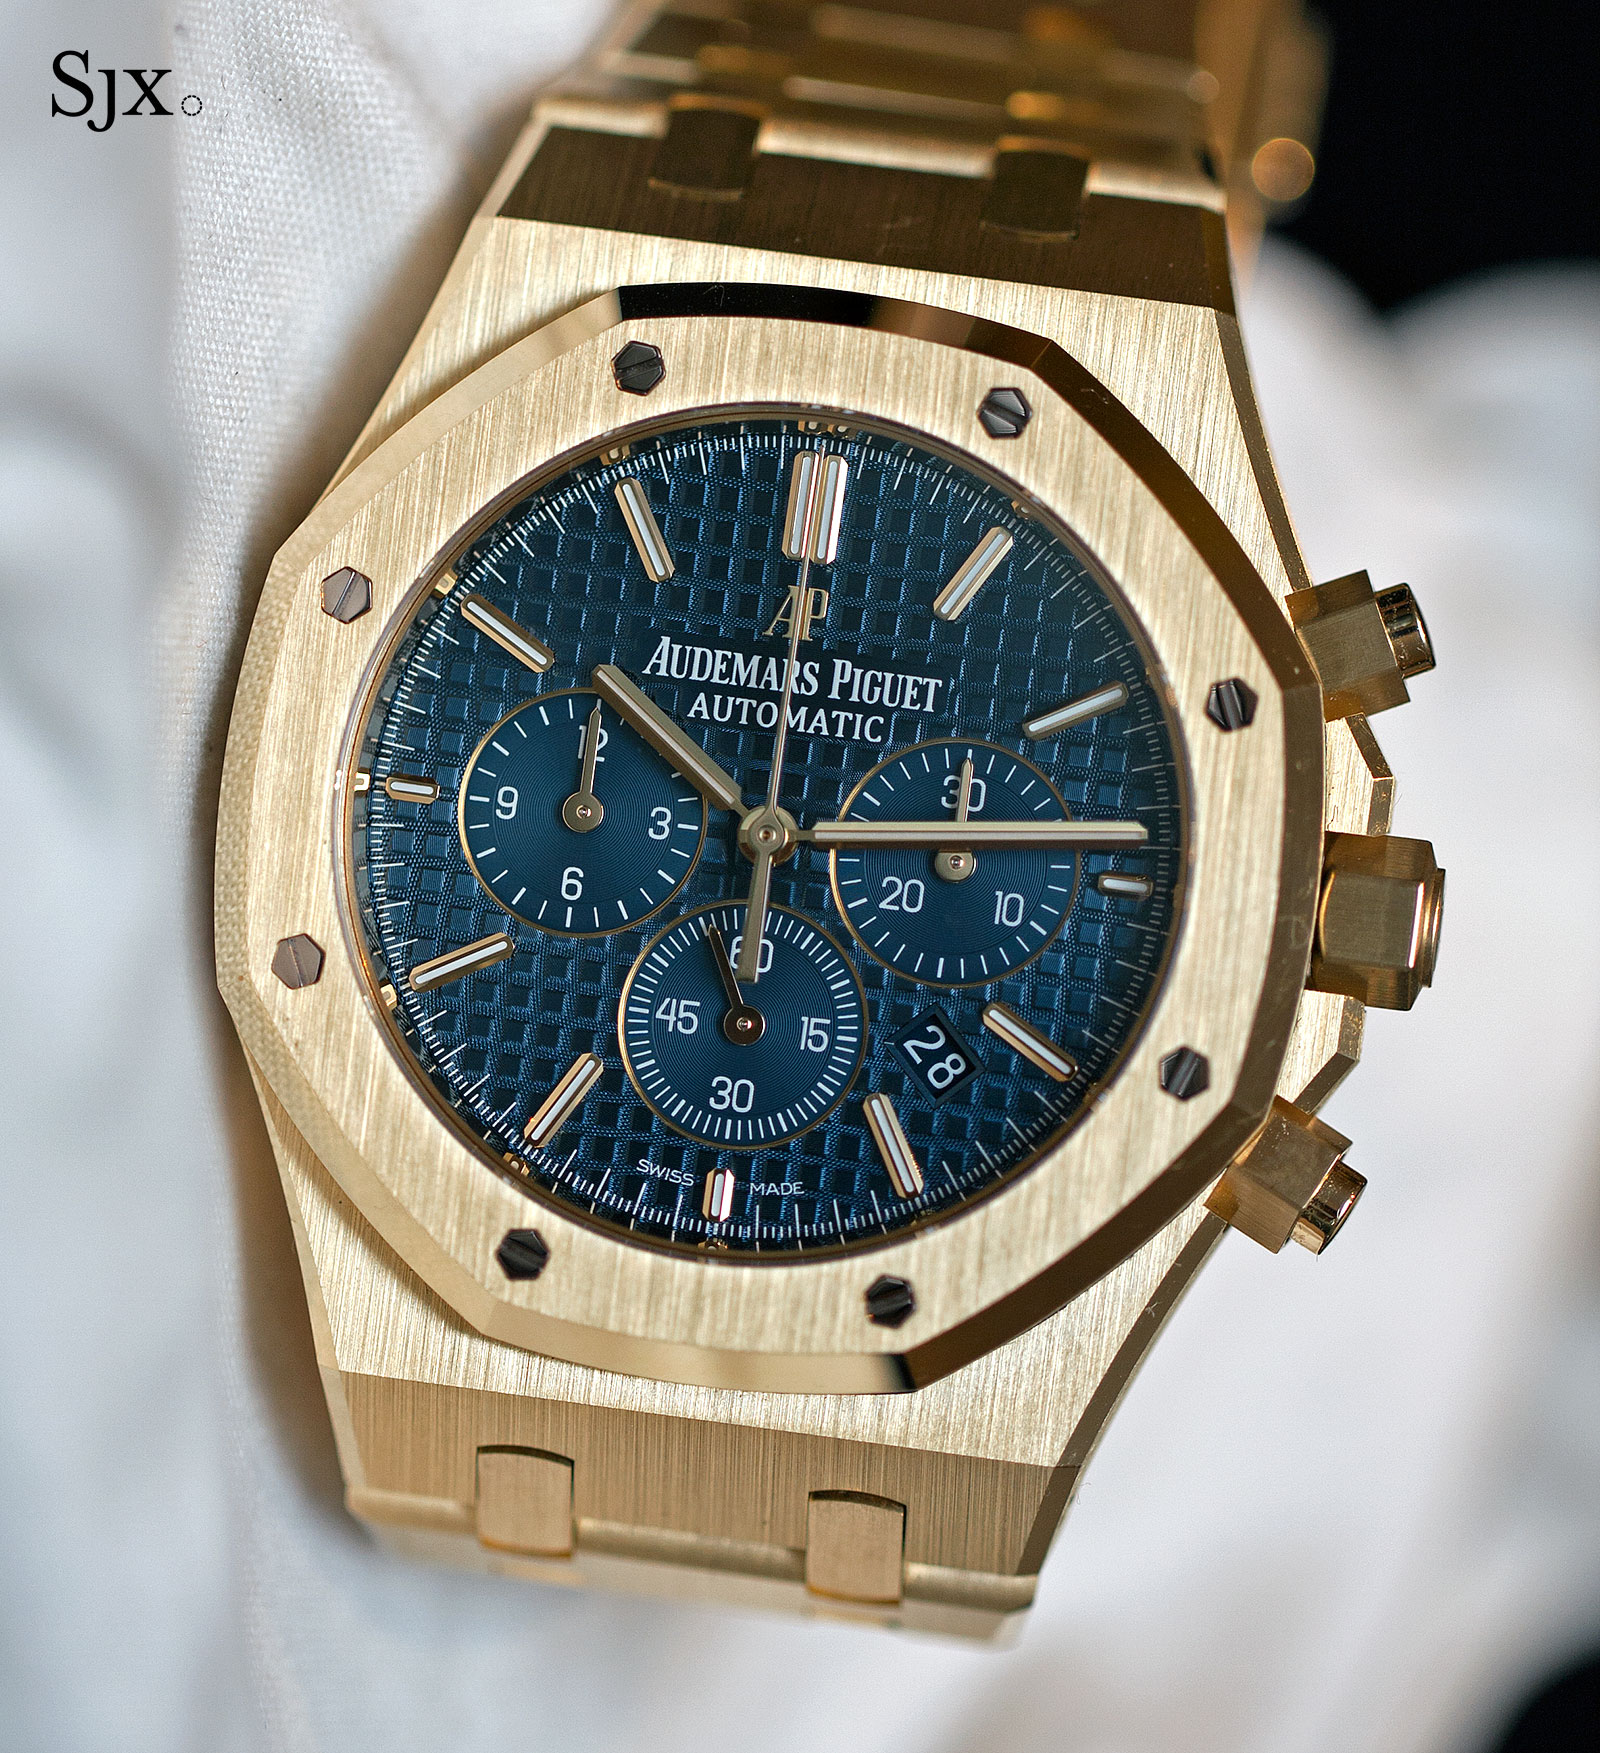 HandsOn with the Audemars Piguet Royal Oak Chronograph 41